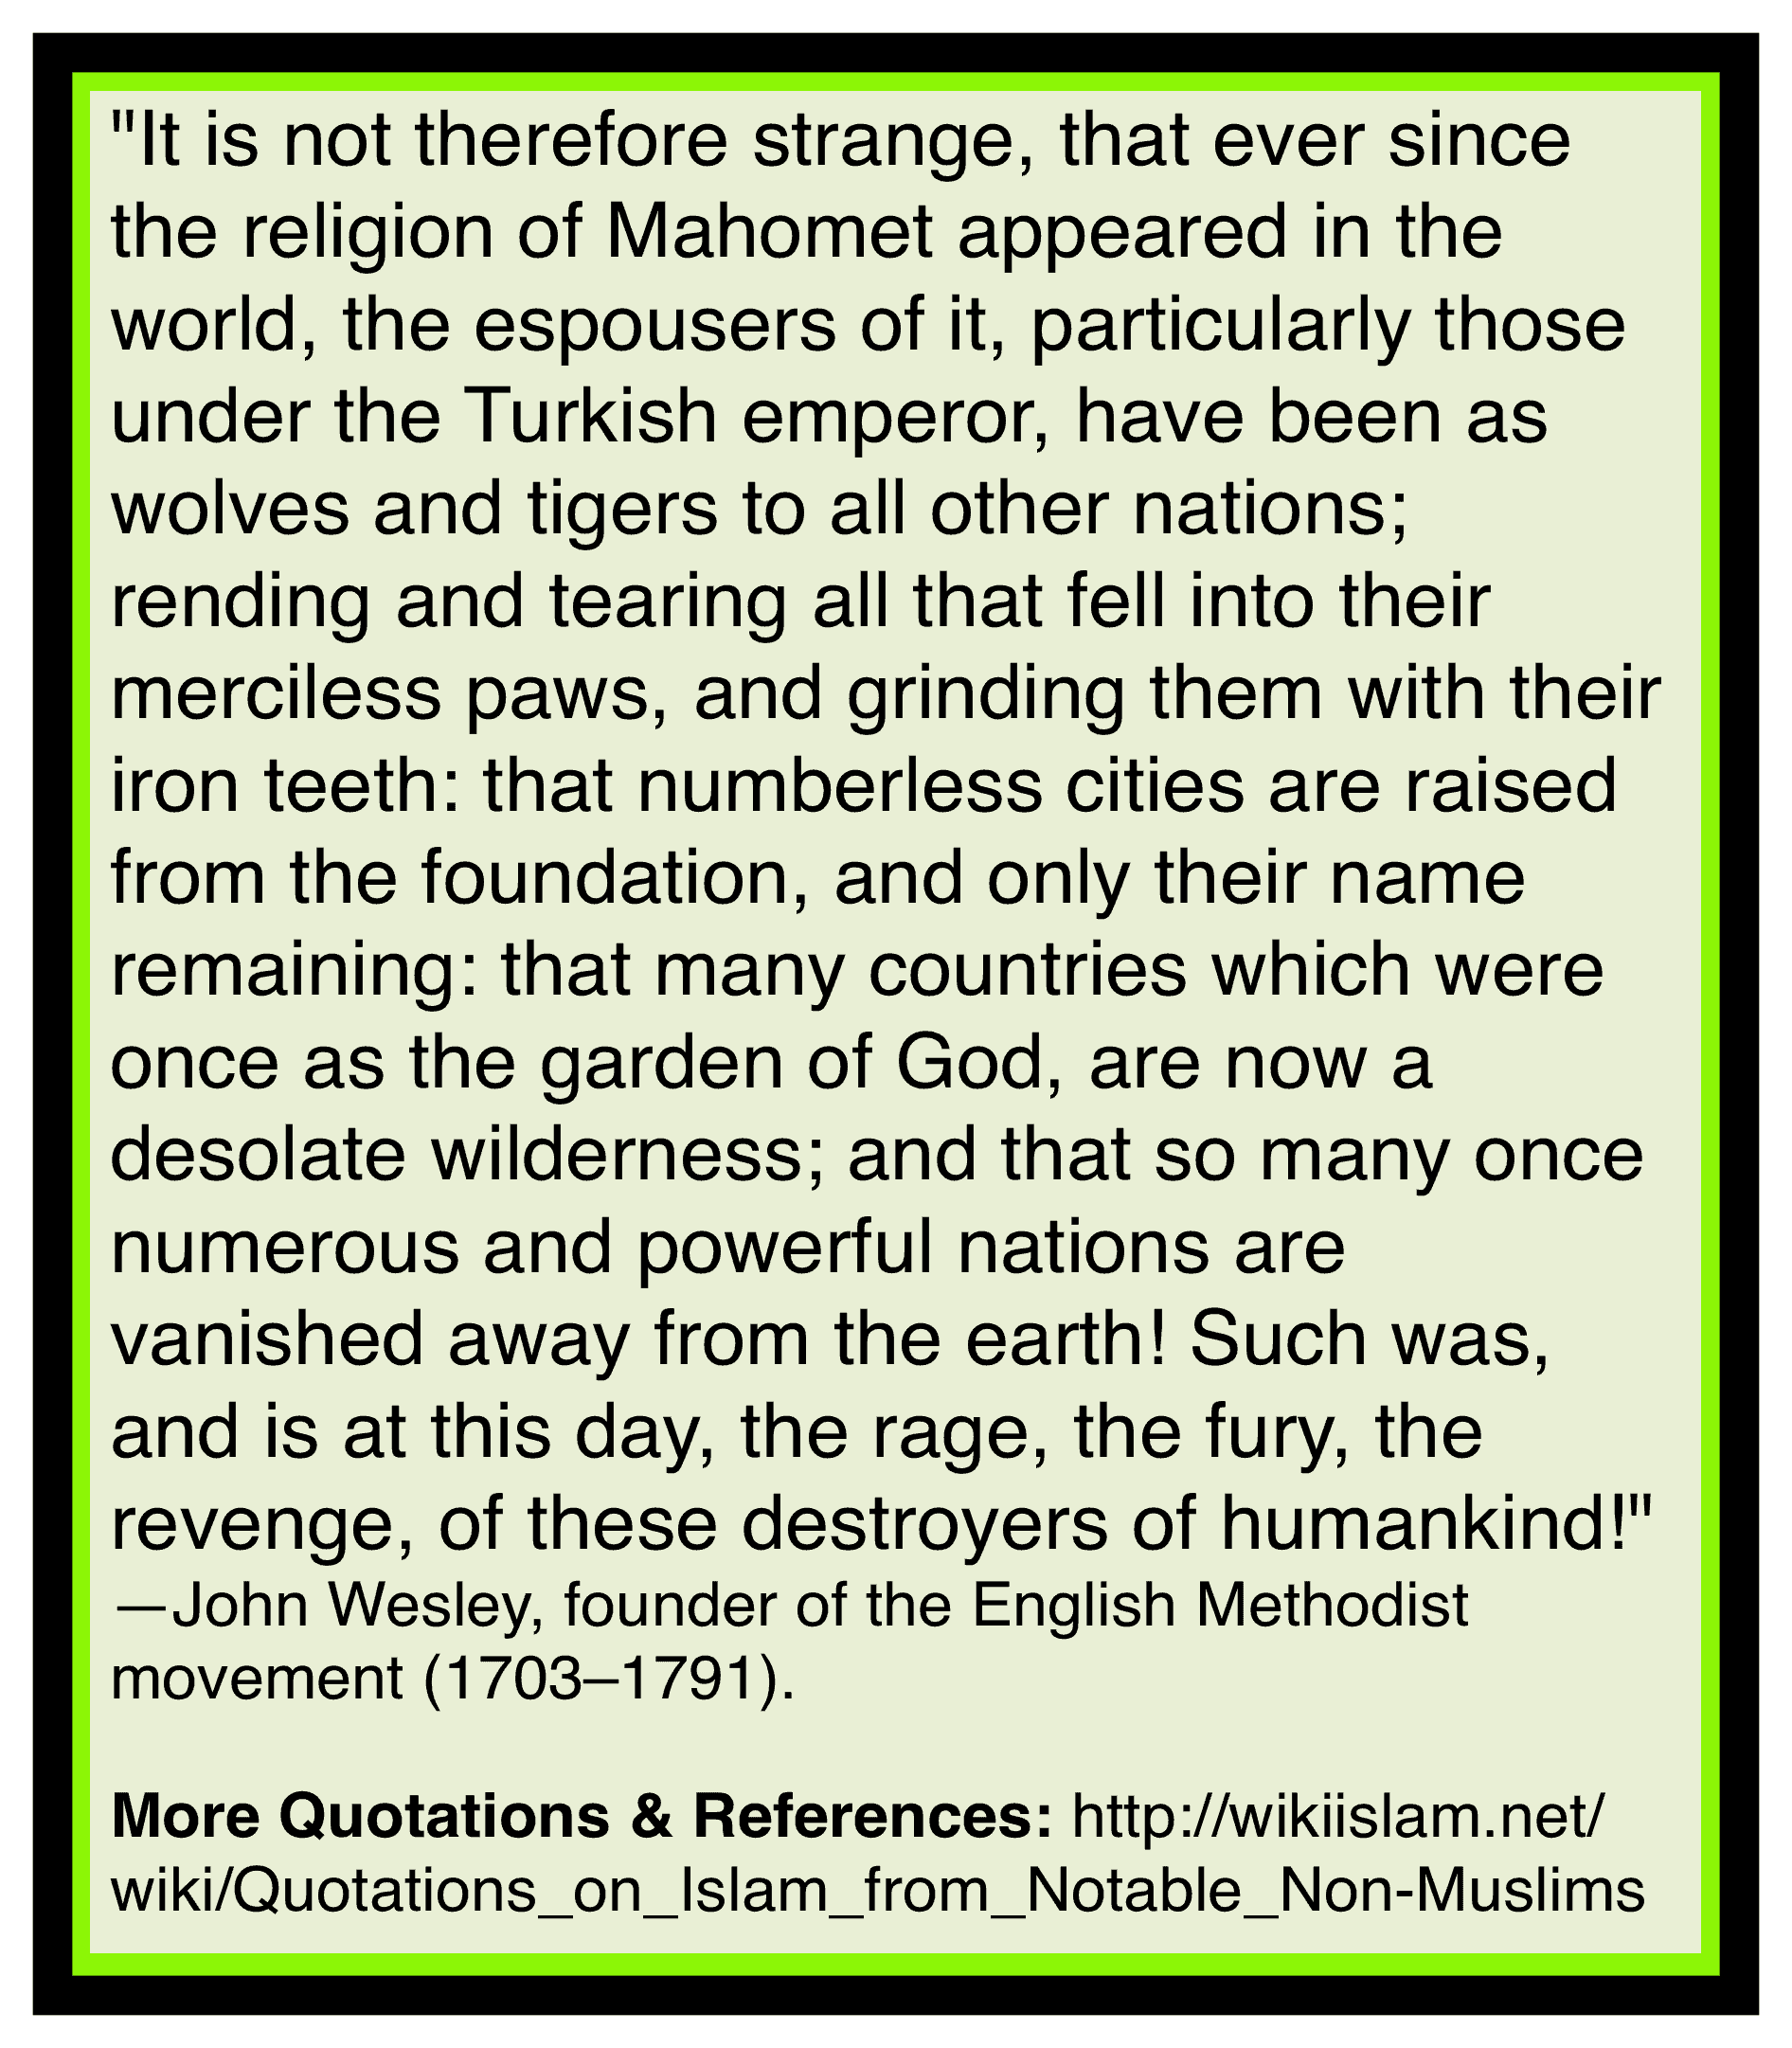 Islam corrupts governments